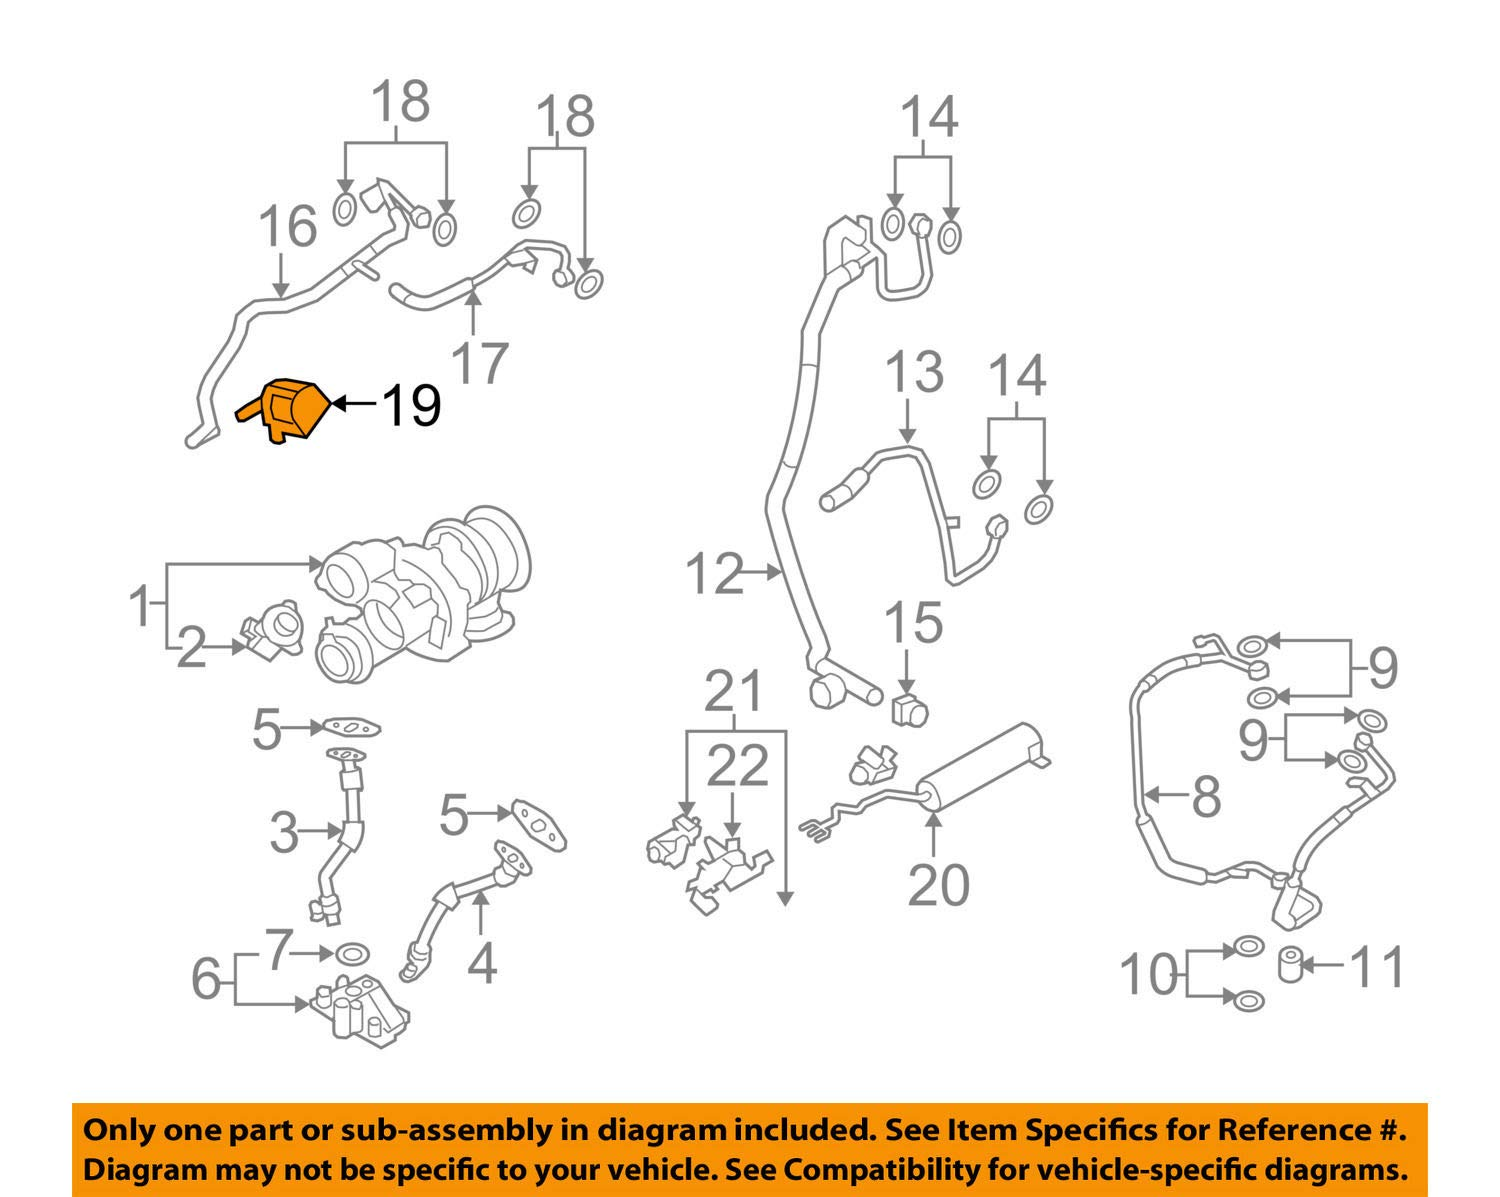 BMW 11-51-7-629-916 Geniune Auxiliary Water Pump:115010 by BMW (Image #1)